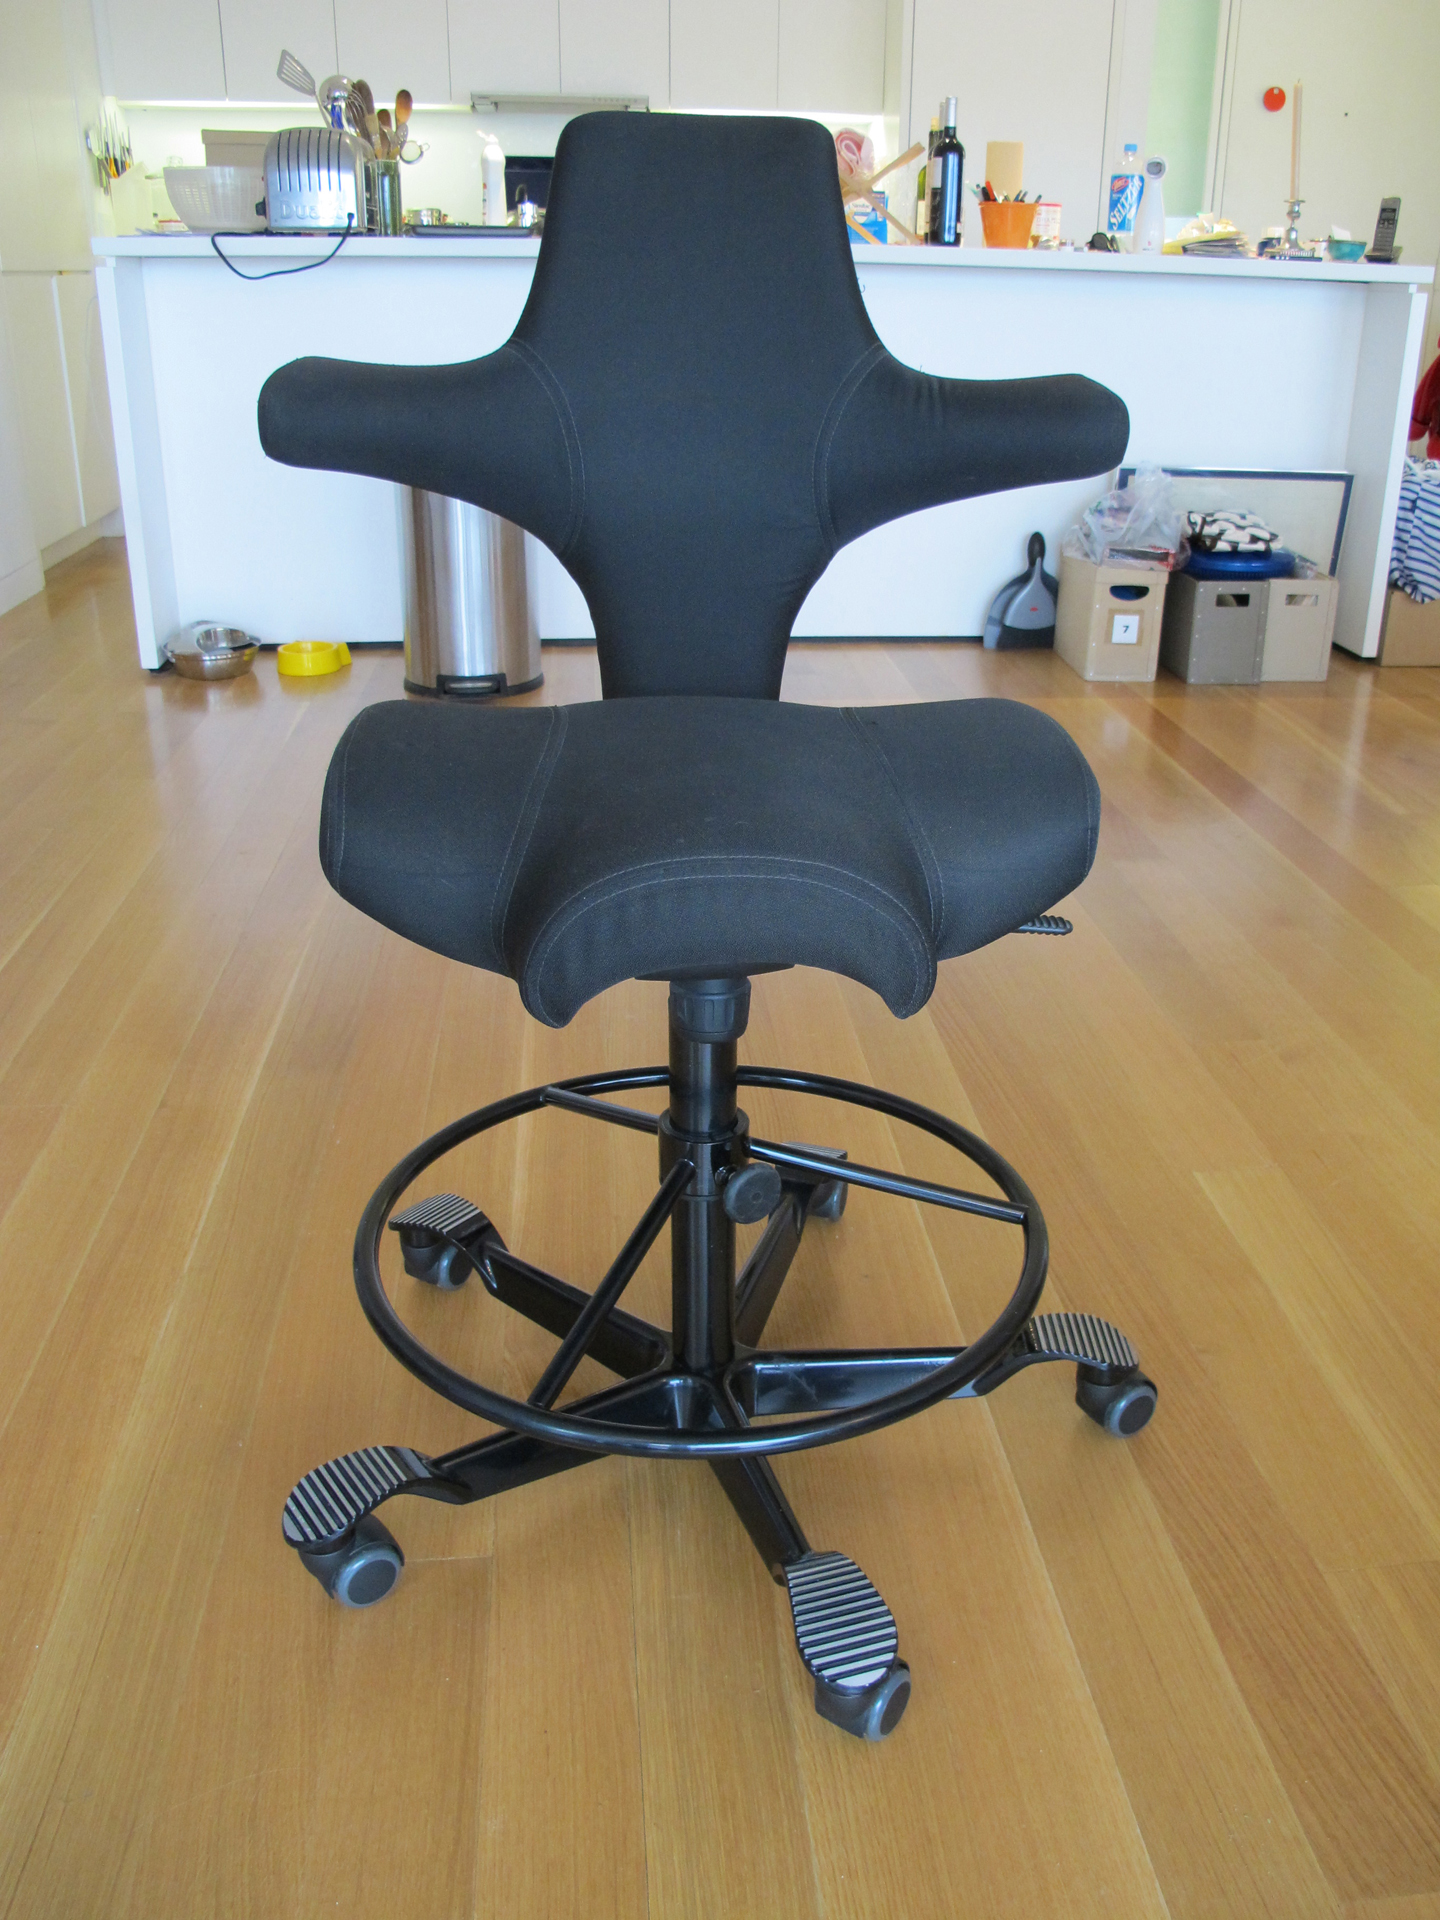 Capisco Chair Price Reduced Håg Capisco 8106 Desk Chair Apartment